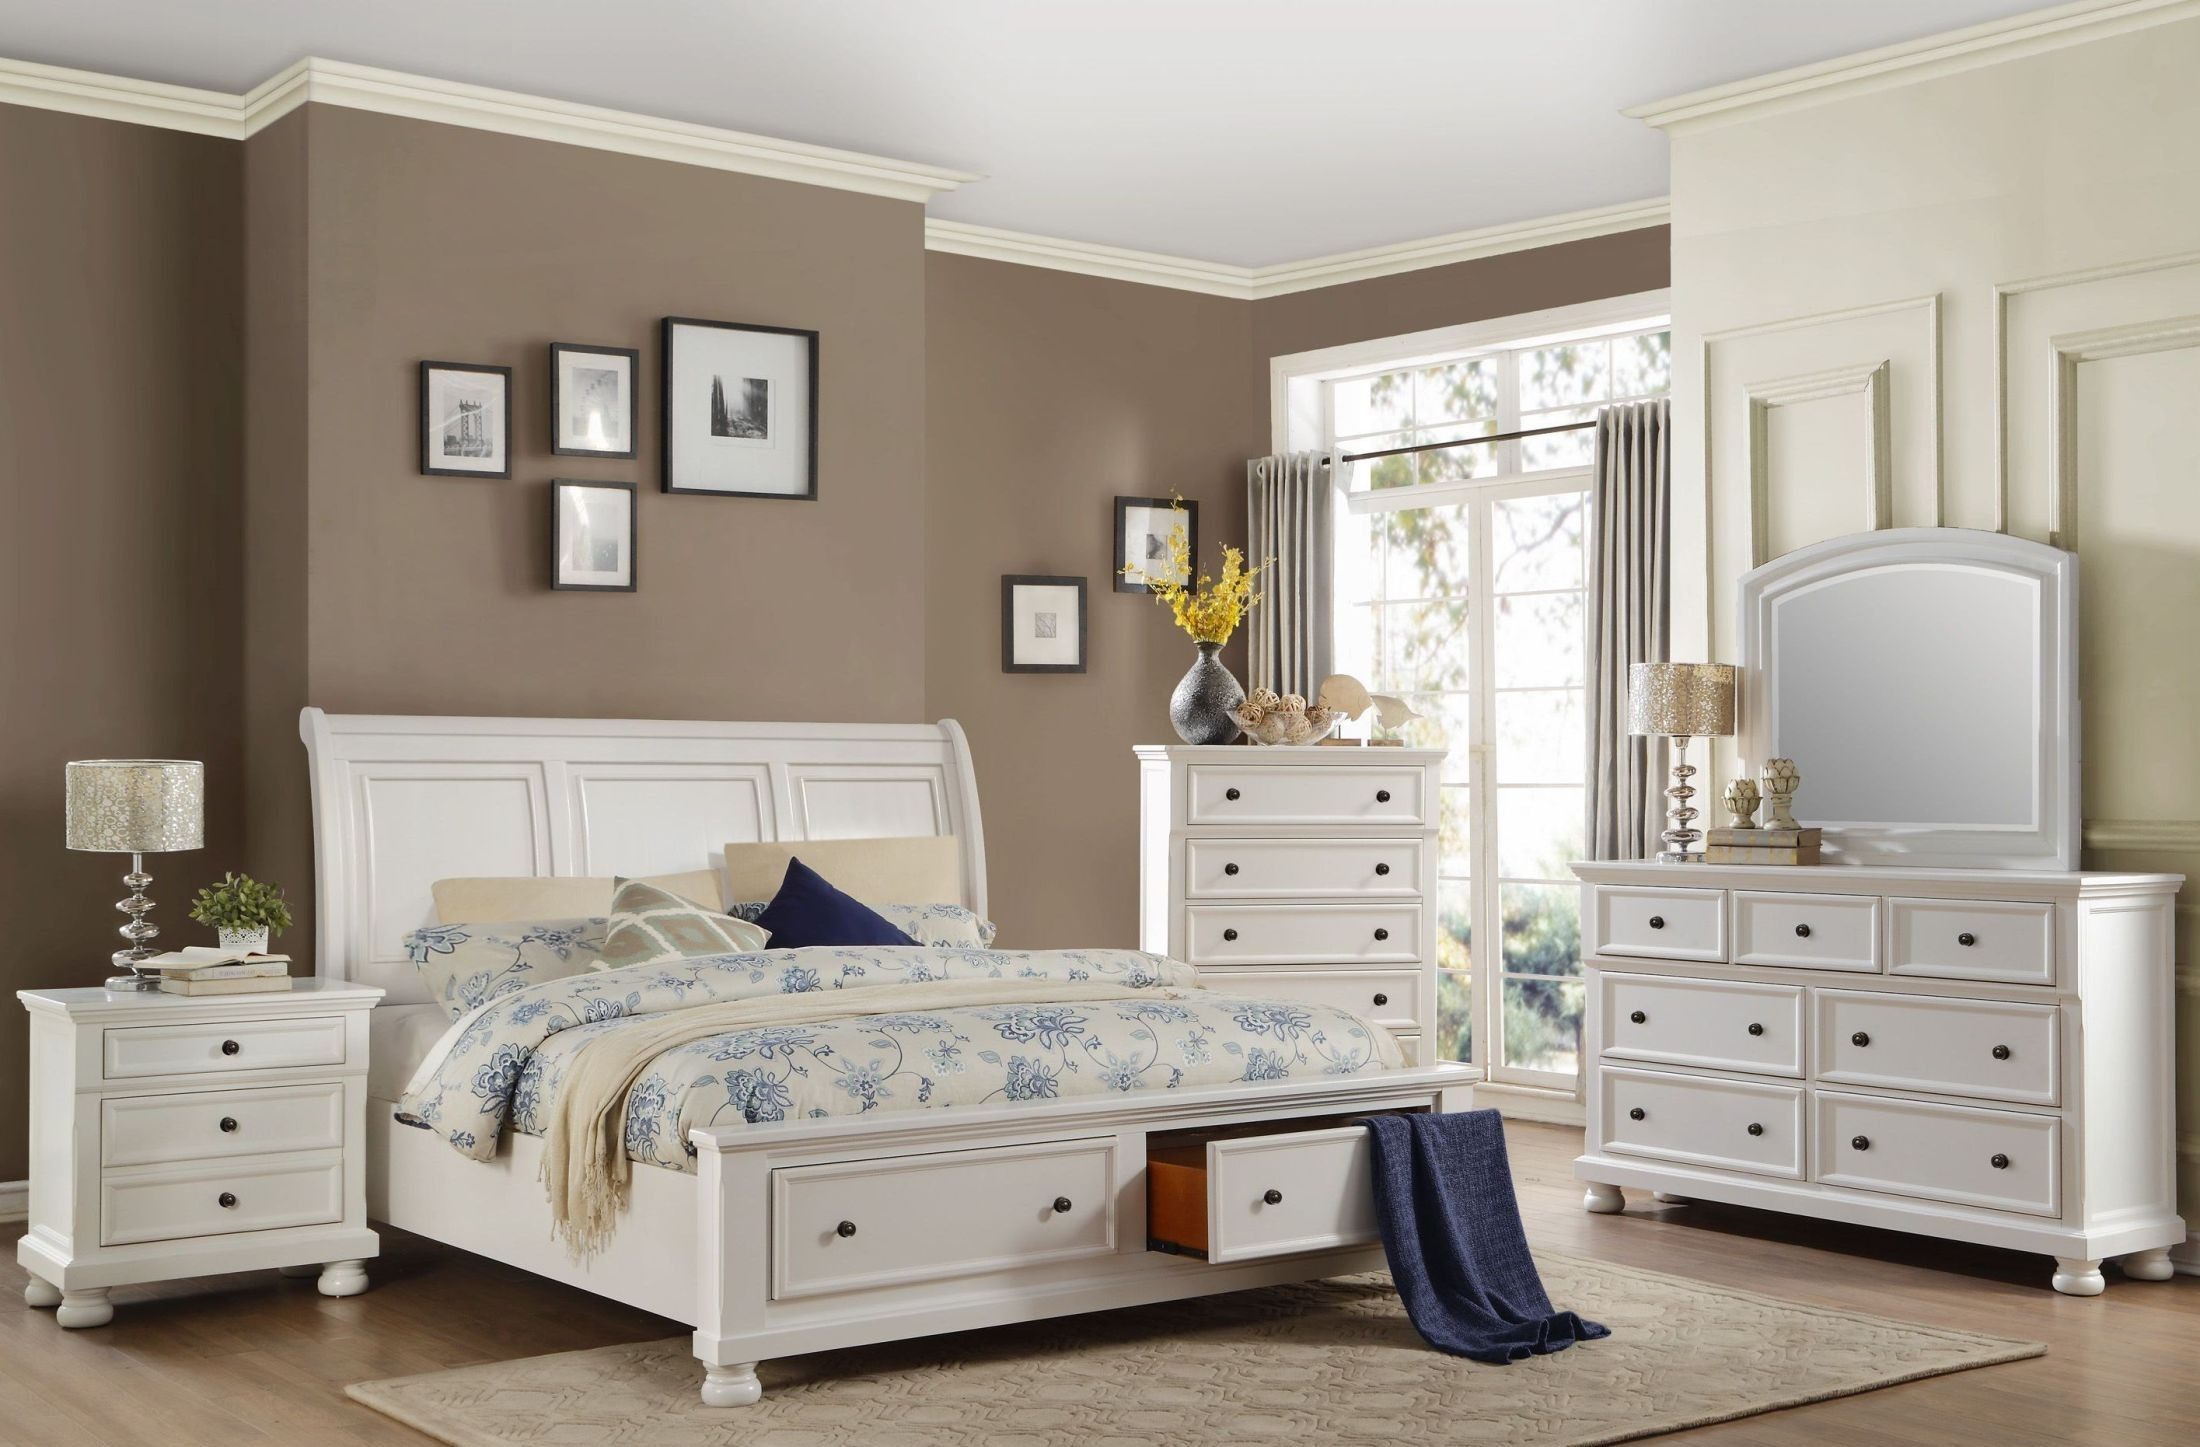 Laurelin white cal king sleigh storage bed from - California king storage bedroom sets ...